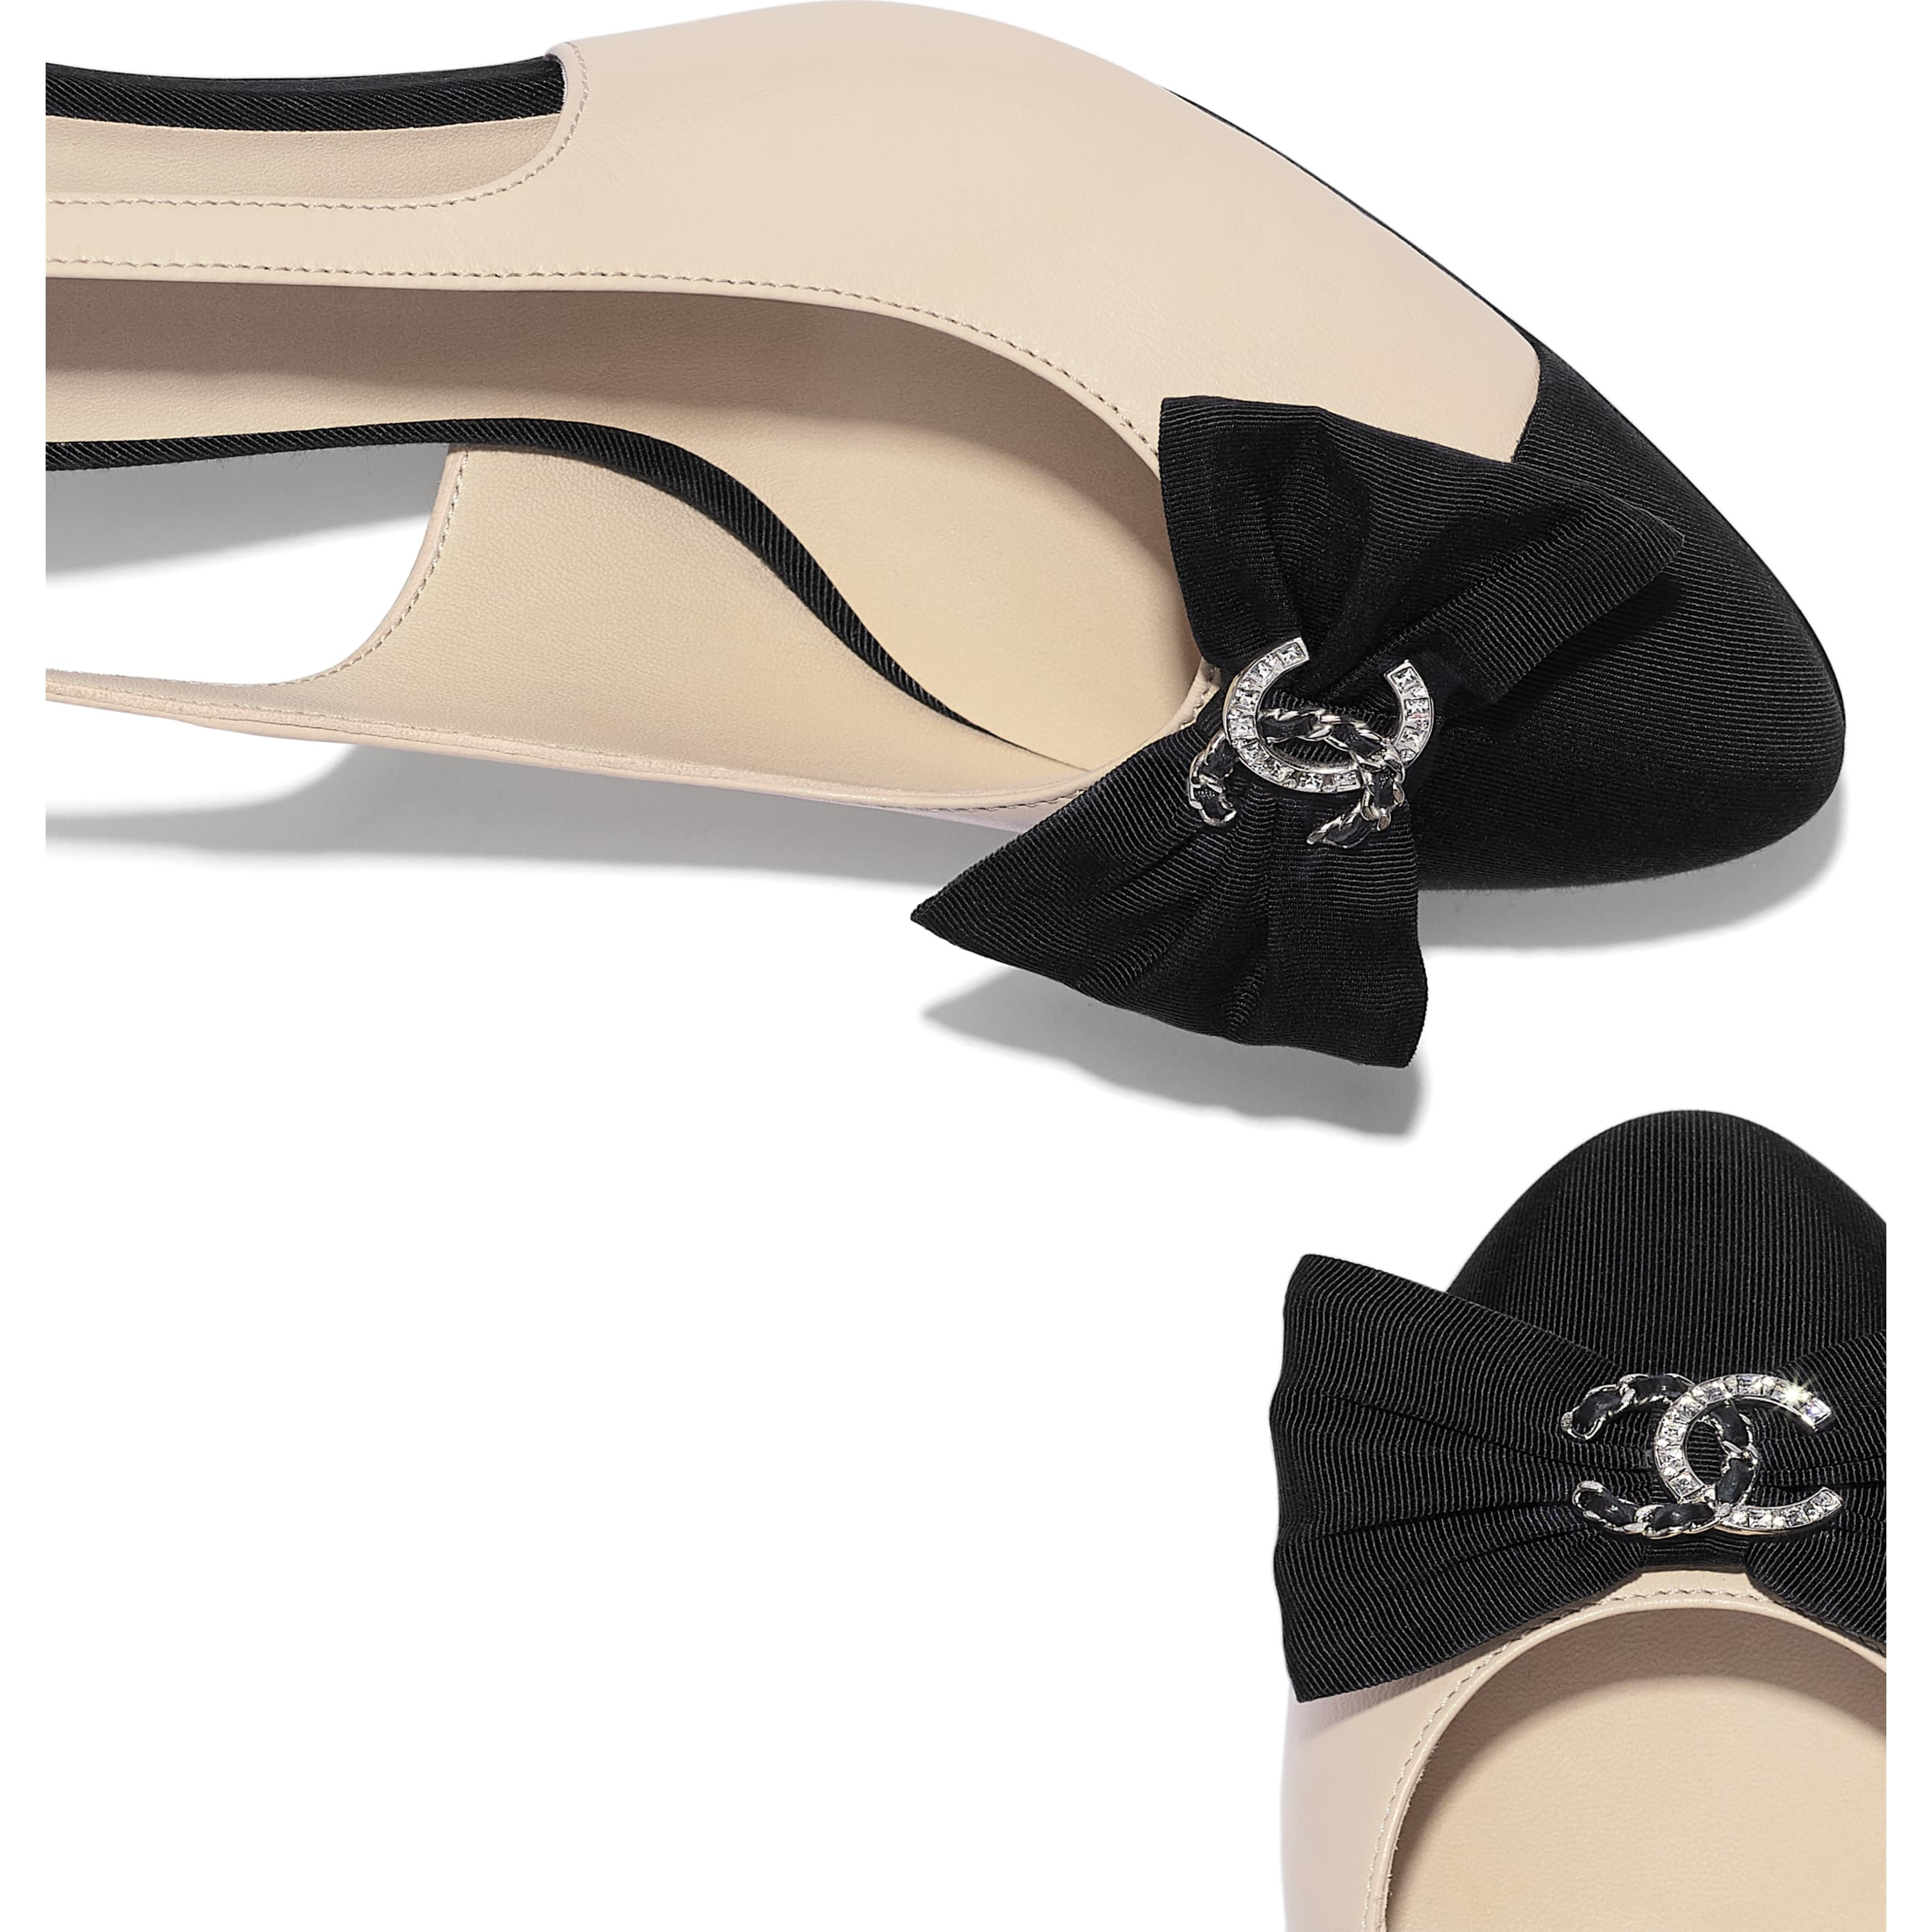 Pumps - Beige & Black - Lambskin & Grosgrain - CHANEL - Extra view - see standard sized version